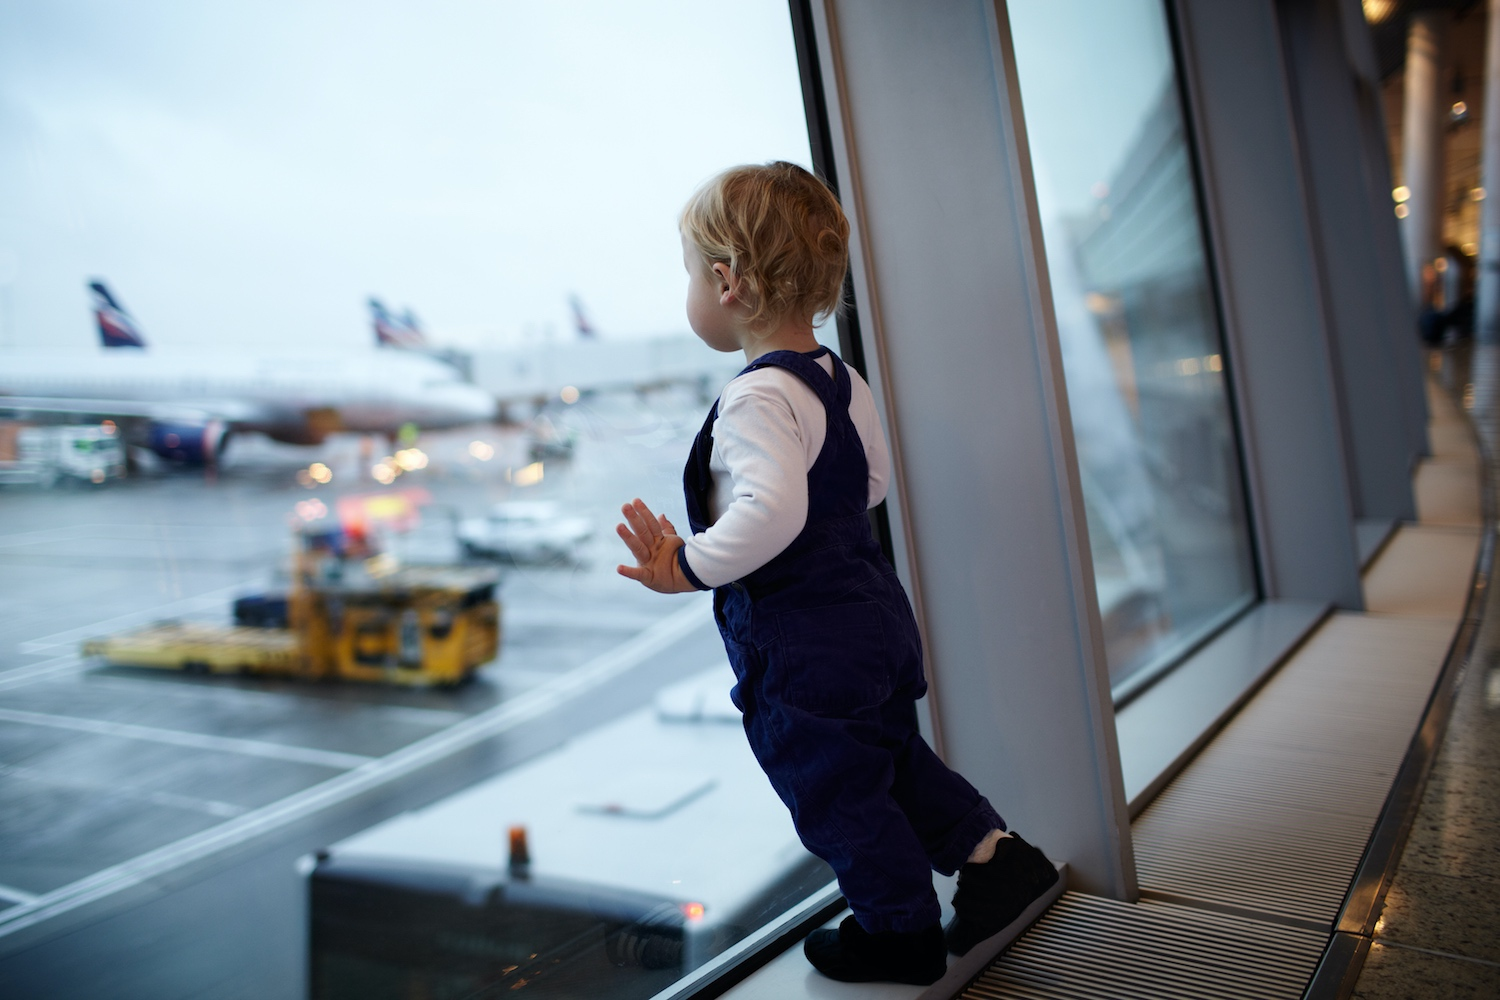 Flying is cool. - (Most) Kids Agree